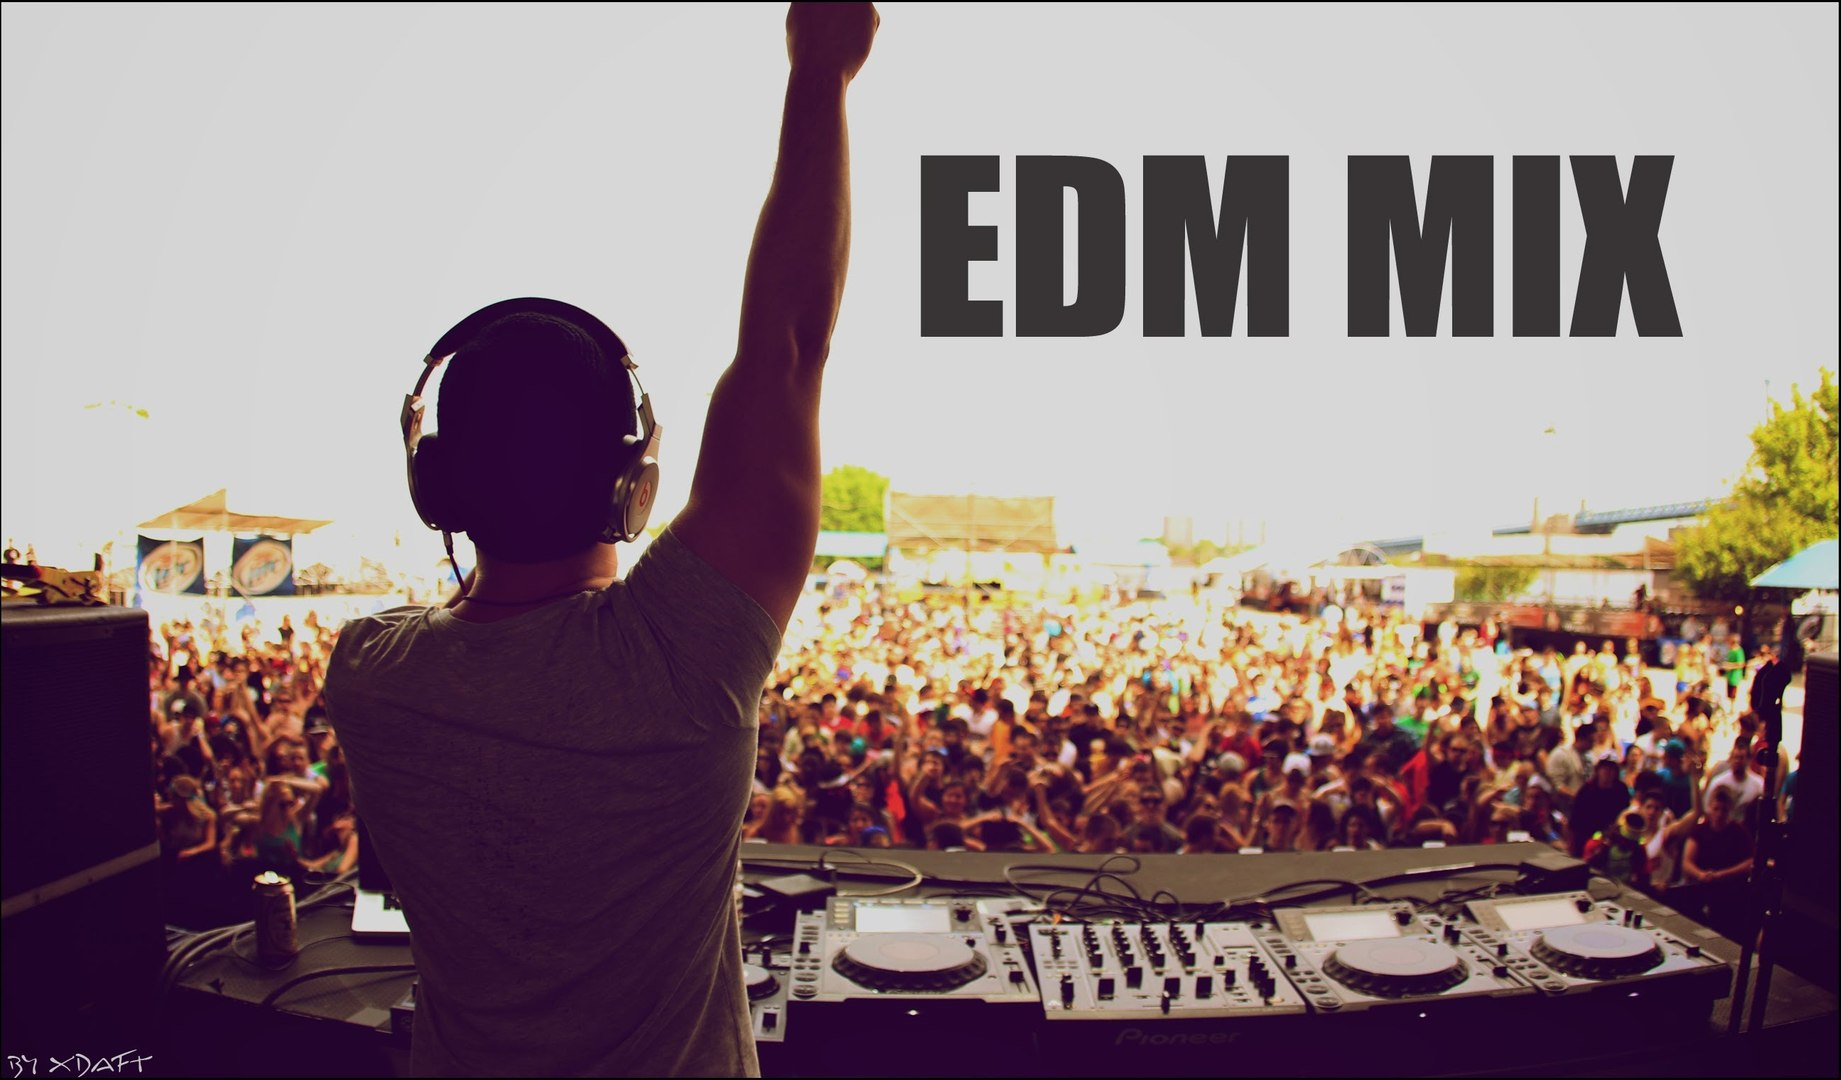 Best of EDM 2016 - Top Electro House 2016 - New Top EDM Songs 2016